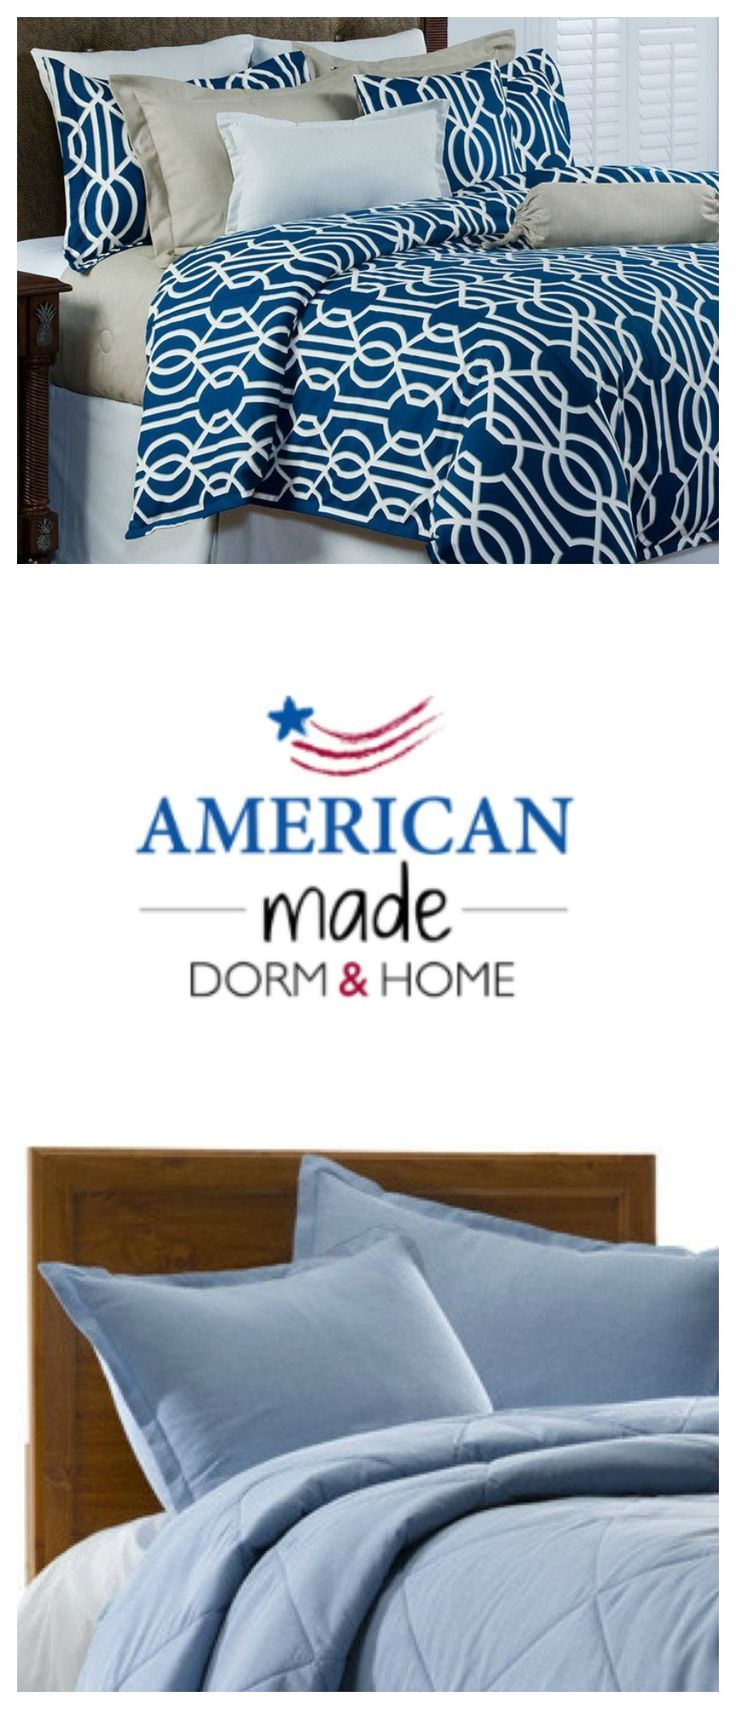 Made in USA college dorm bedding and boarding school bedding | American Made Dorm & Home | Bedding for teens and young adults